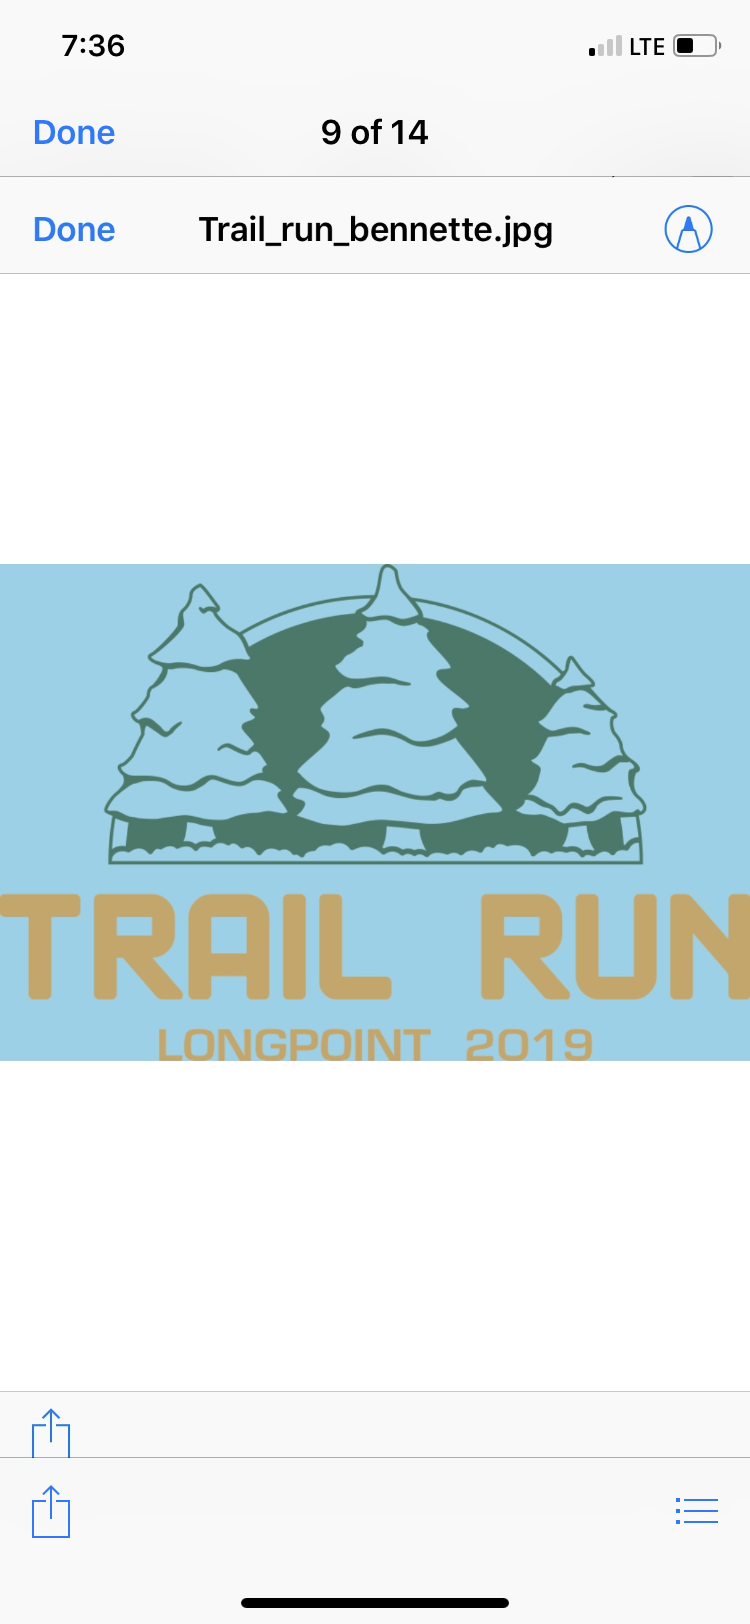 Long point trail 5K and 1 mile fun runWSKG